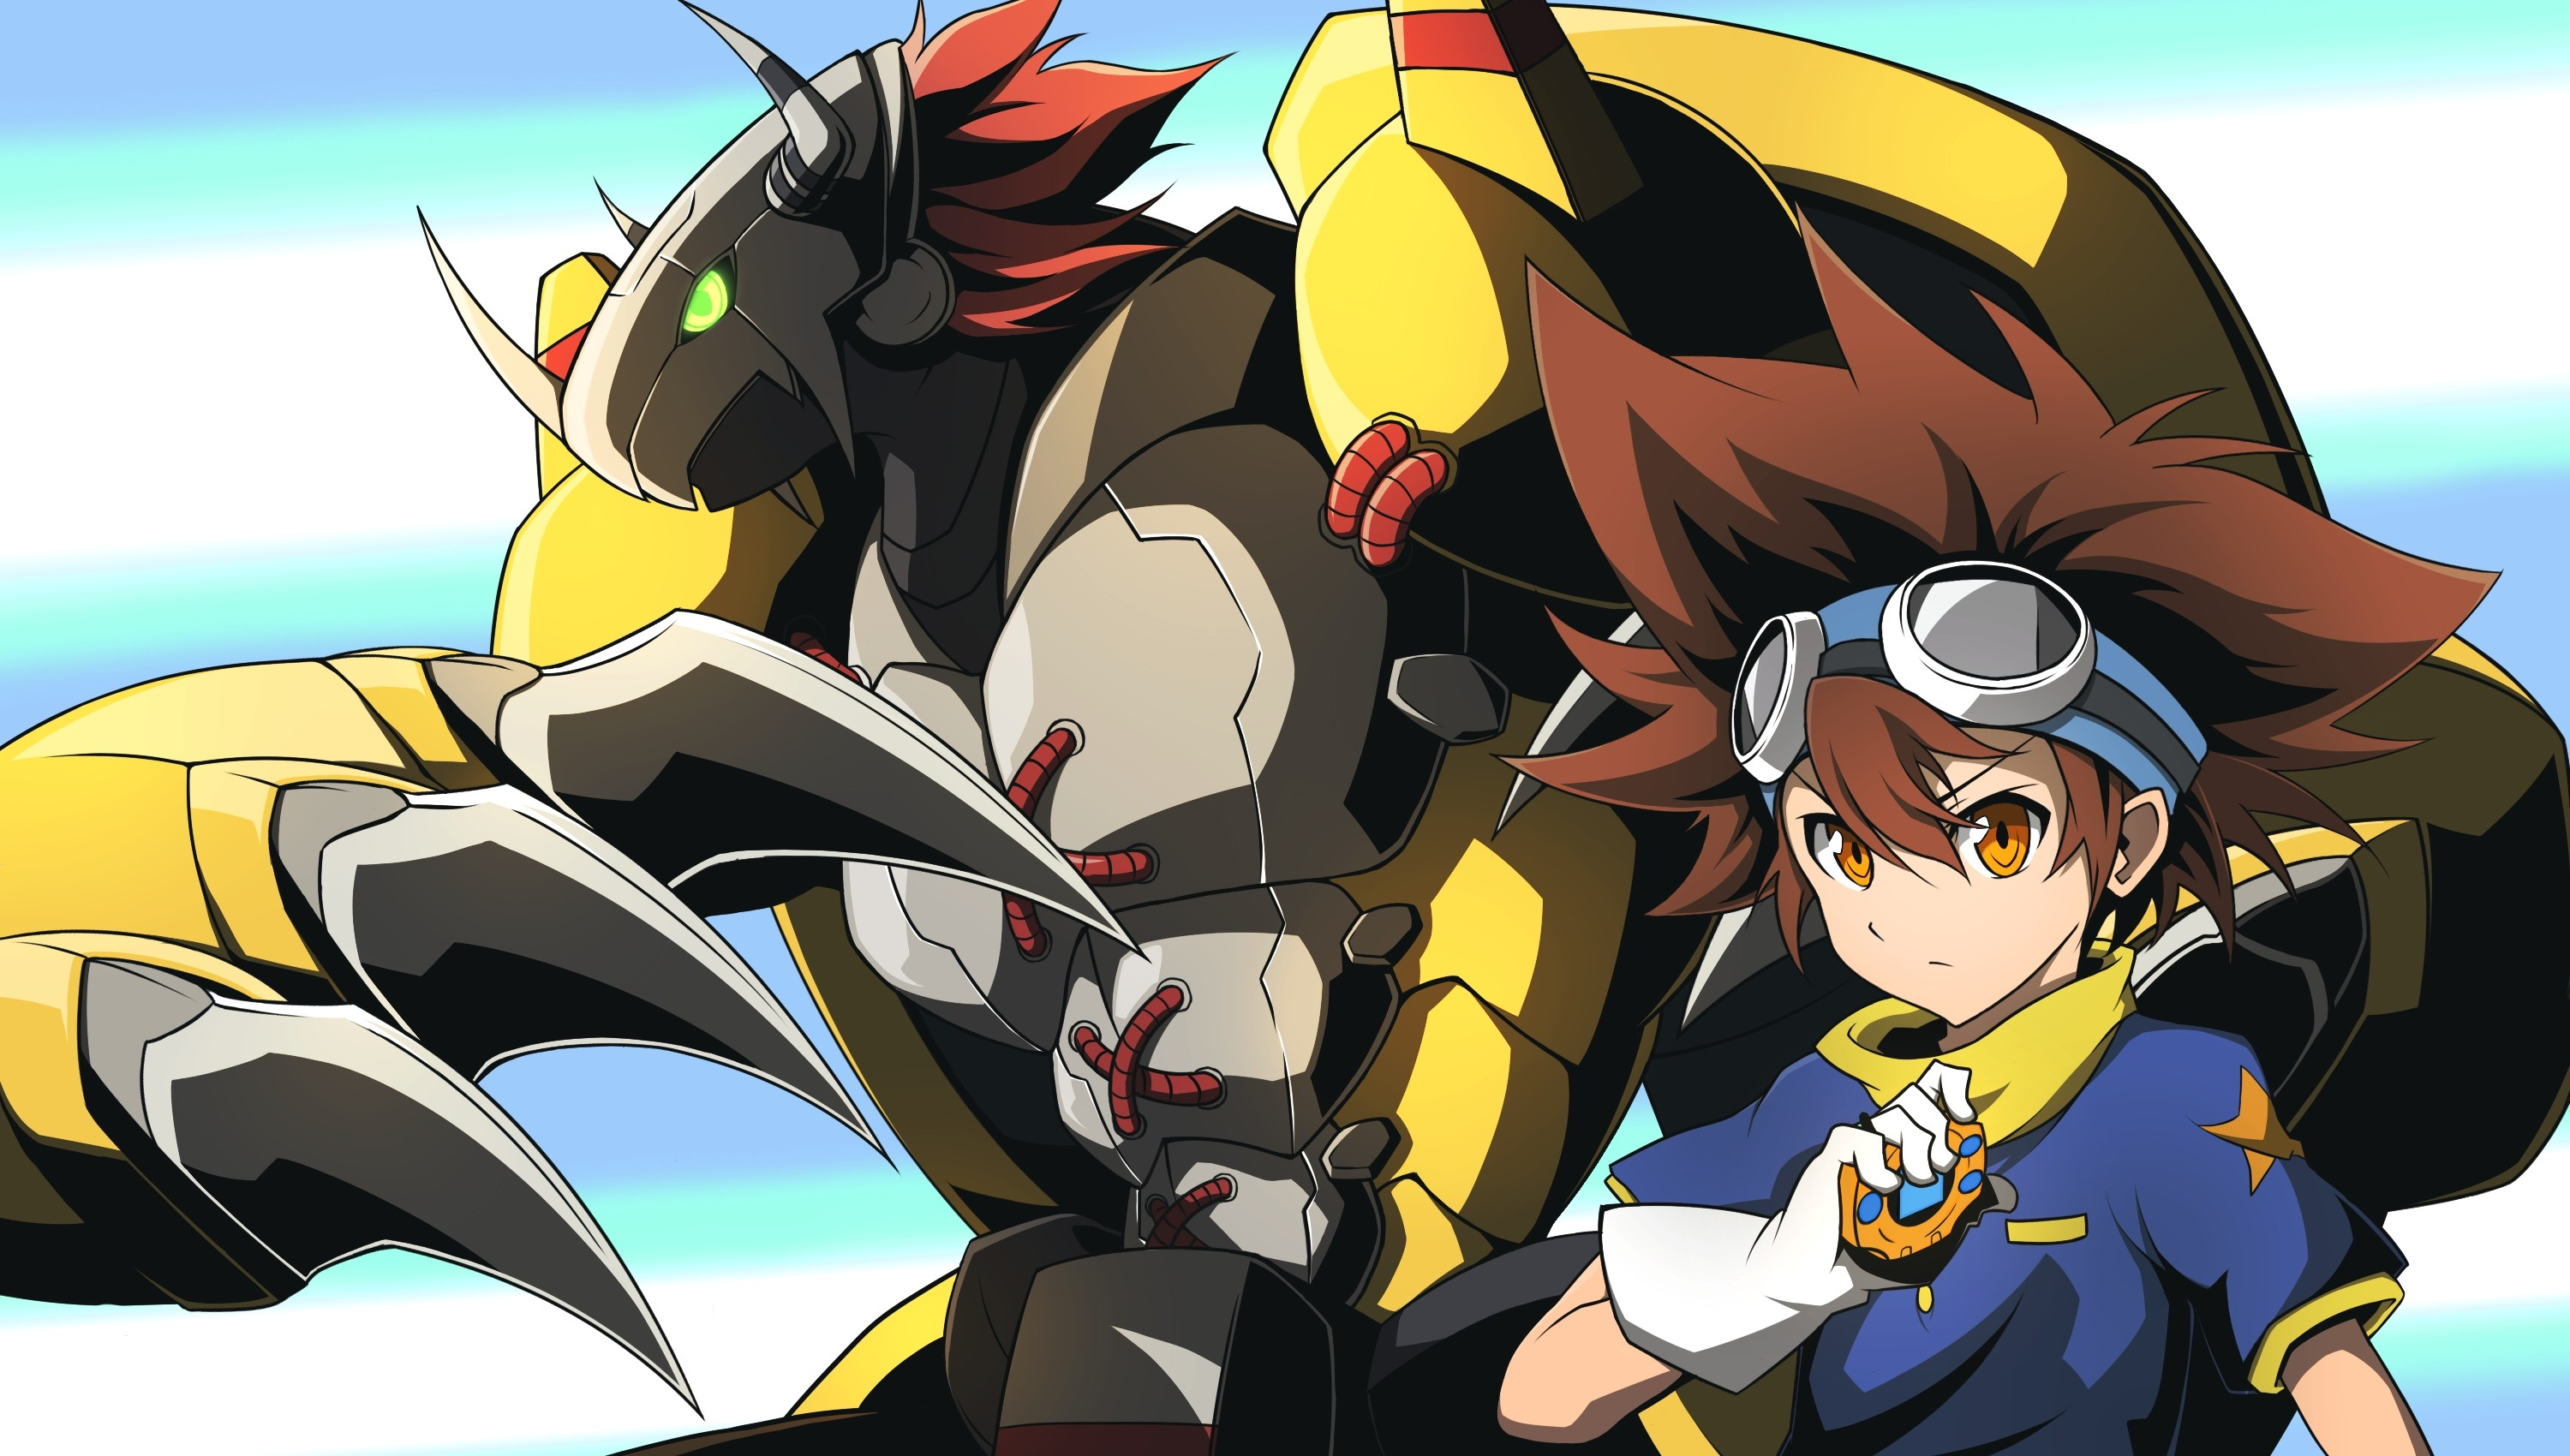 Digimon wallpaper Download free cool High Resolution